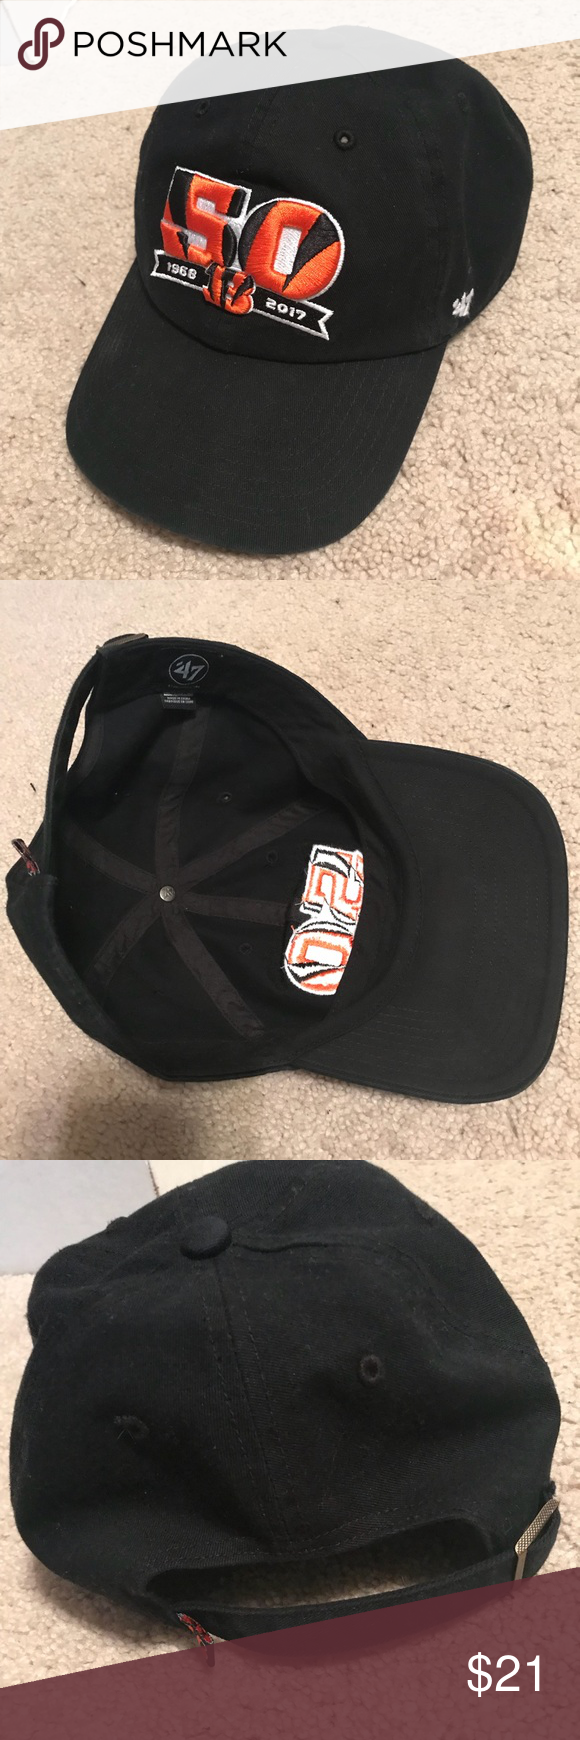 1f5dde00056 RARE Cincinnati Bengals NFL Football Hat Purchased at the Bengals Pro Shop (only  place to